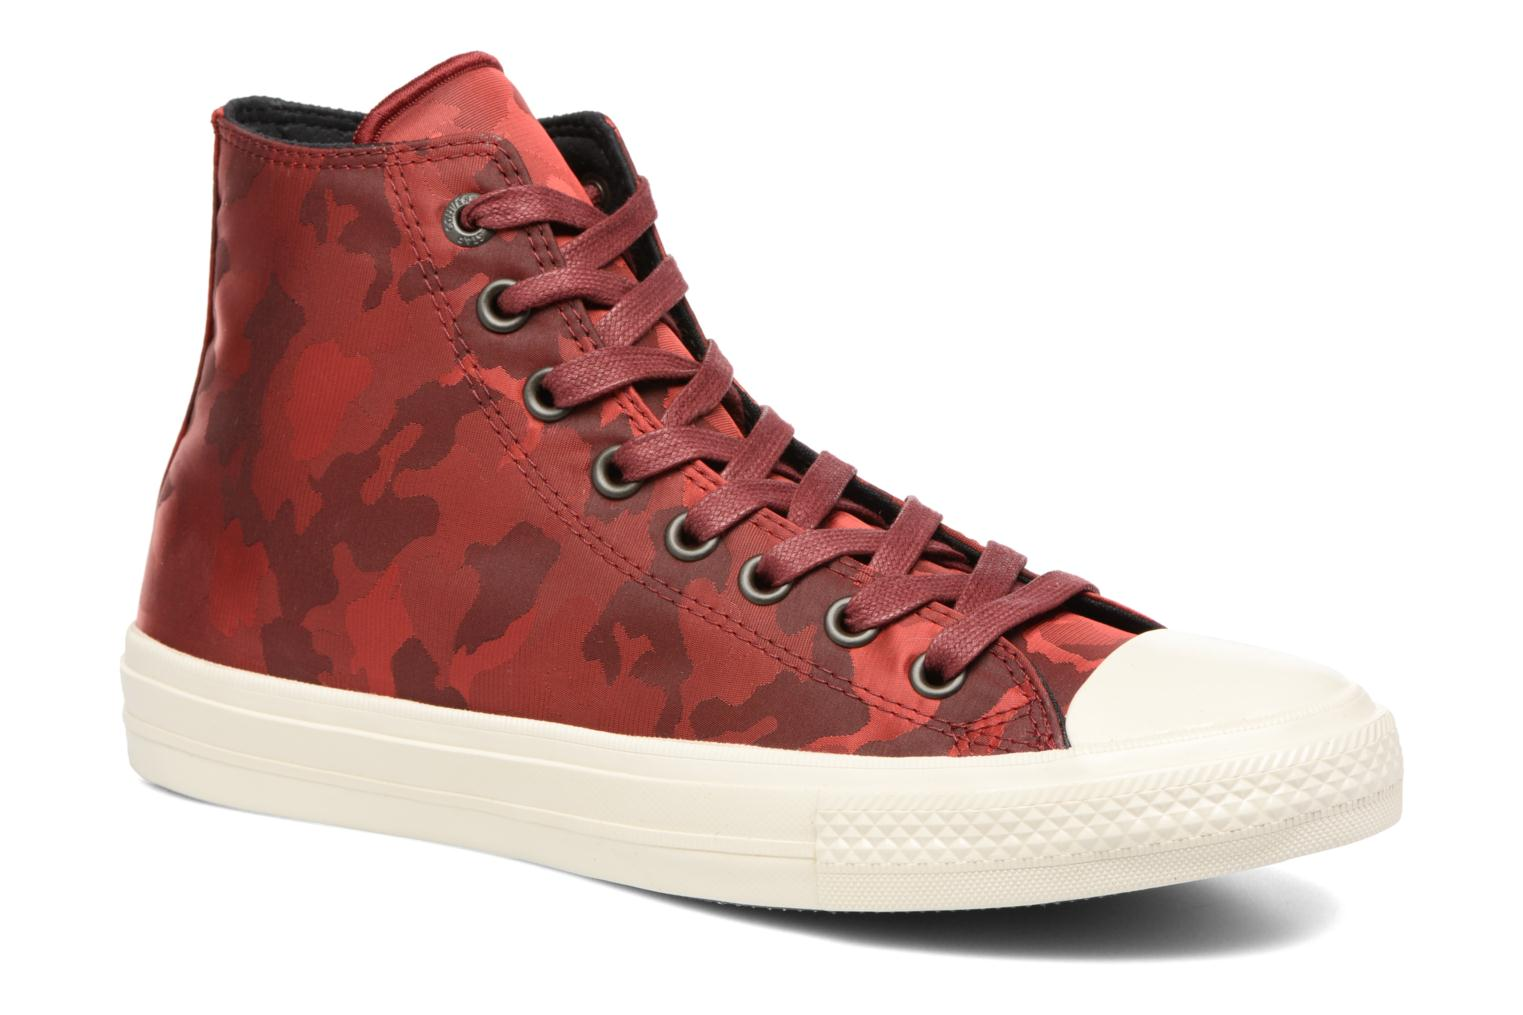 Chuck Taylor All Star II Hi M Oxblood/Oxblood/Turtledove